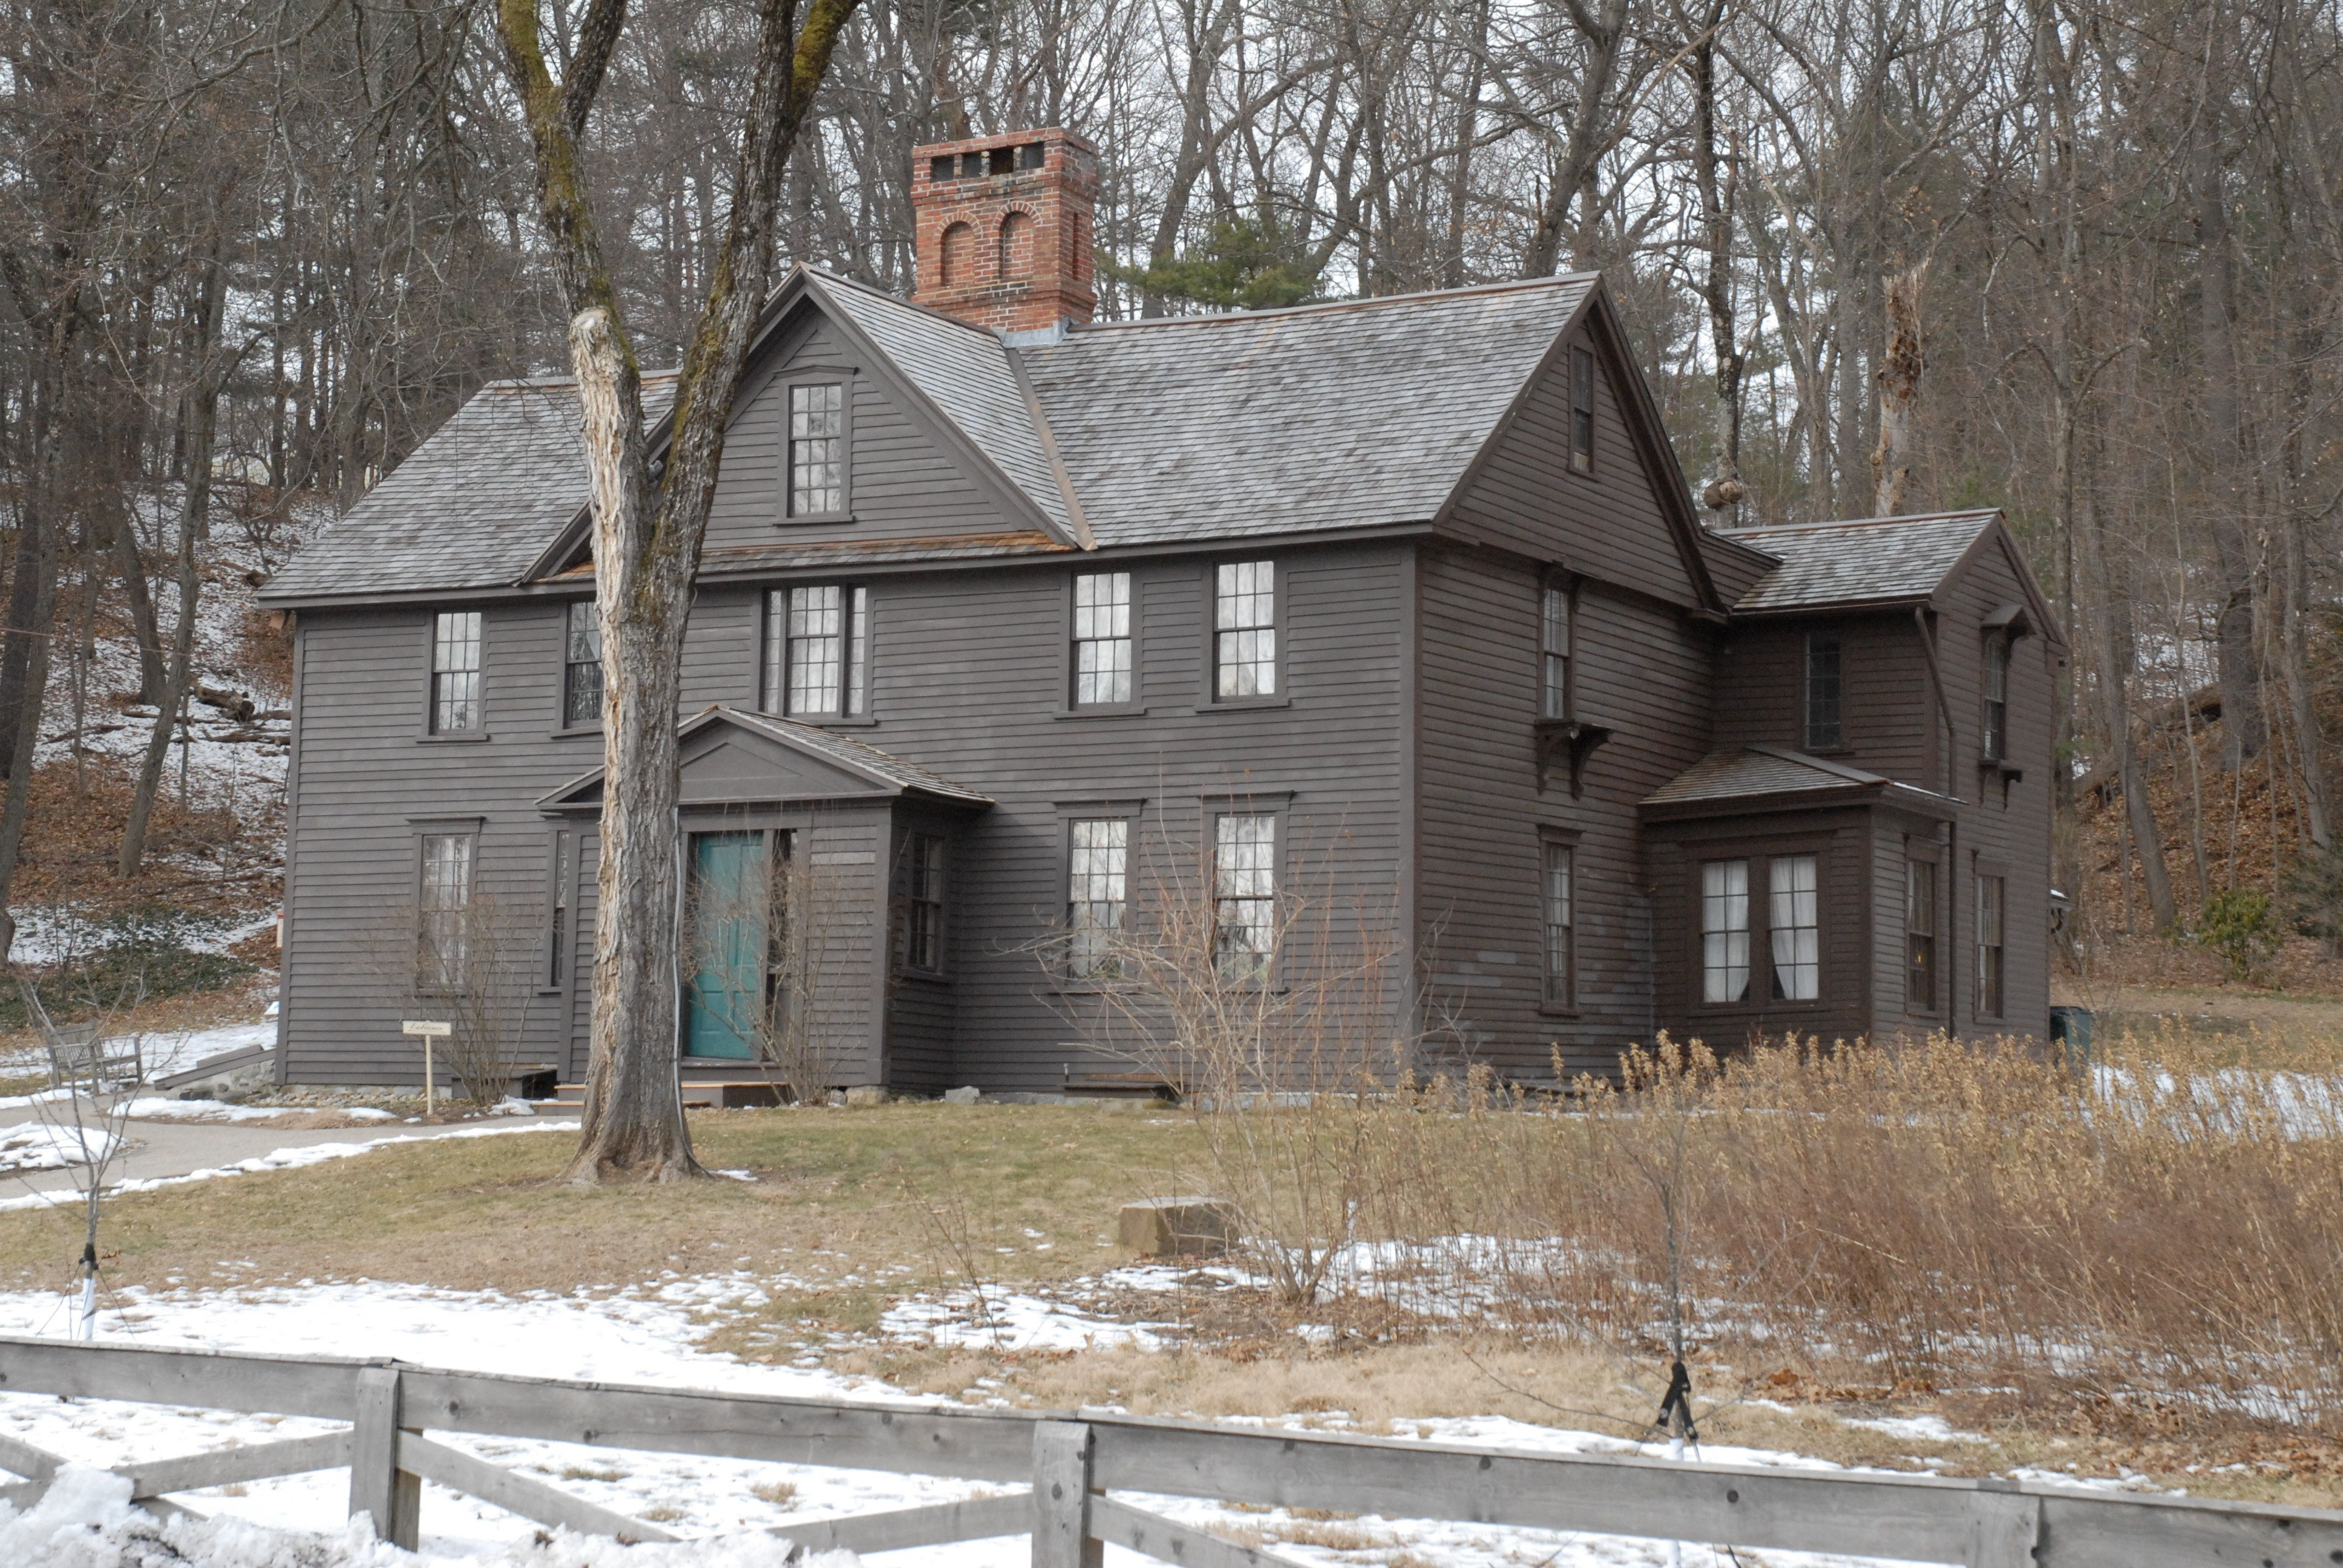 Orchard House Family Home Of Louisa May Alcott Author Of Little